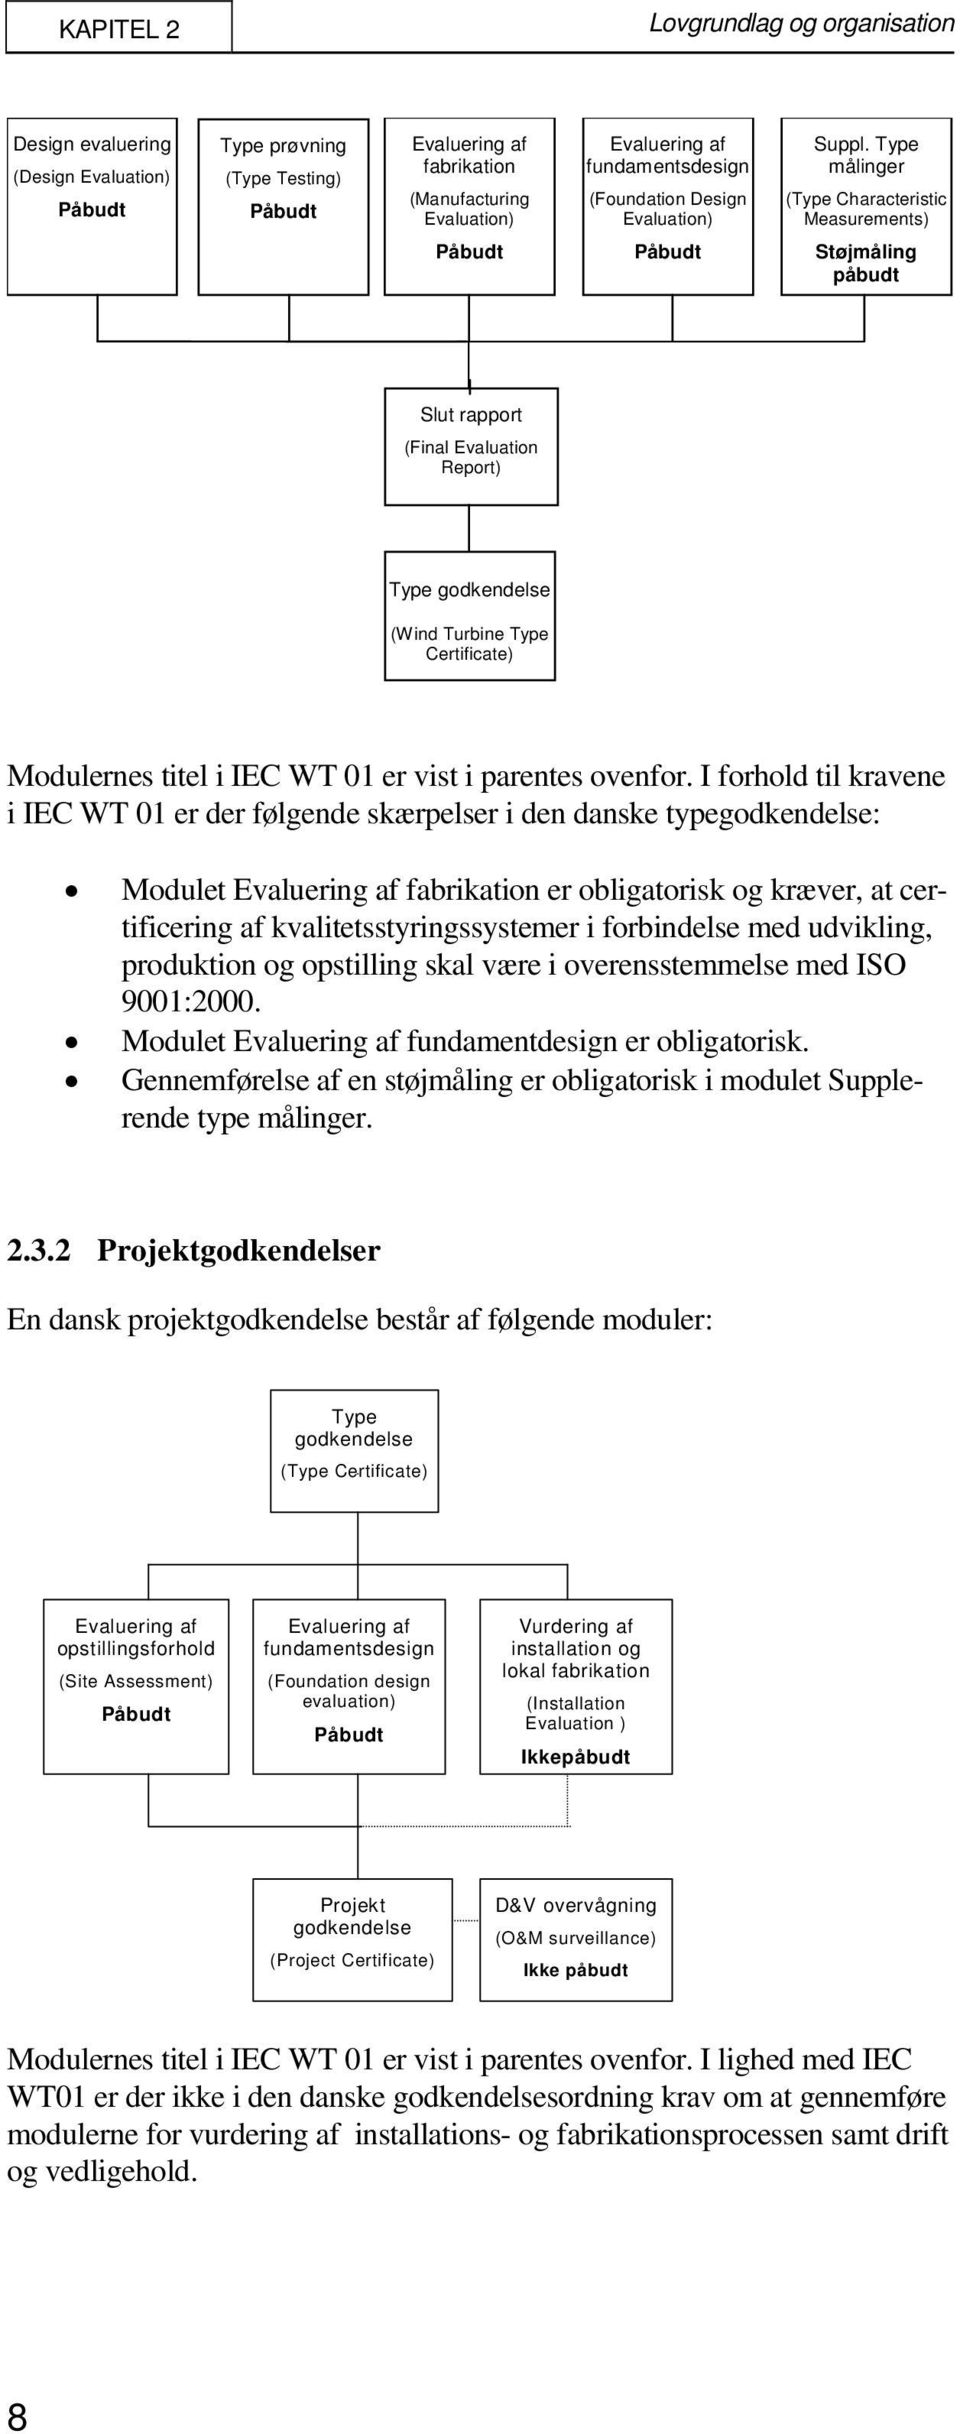 Type målinger (Type Characteristic Measurements) Påbudt Påbudt Støjmåling påbudt Slut rapport (Final Evaluation Report) Type godkendelse (Wind Turbine Type Certificate) Modulernes titel i IEC WT 01